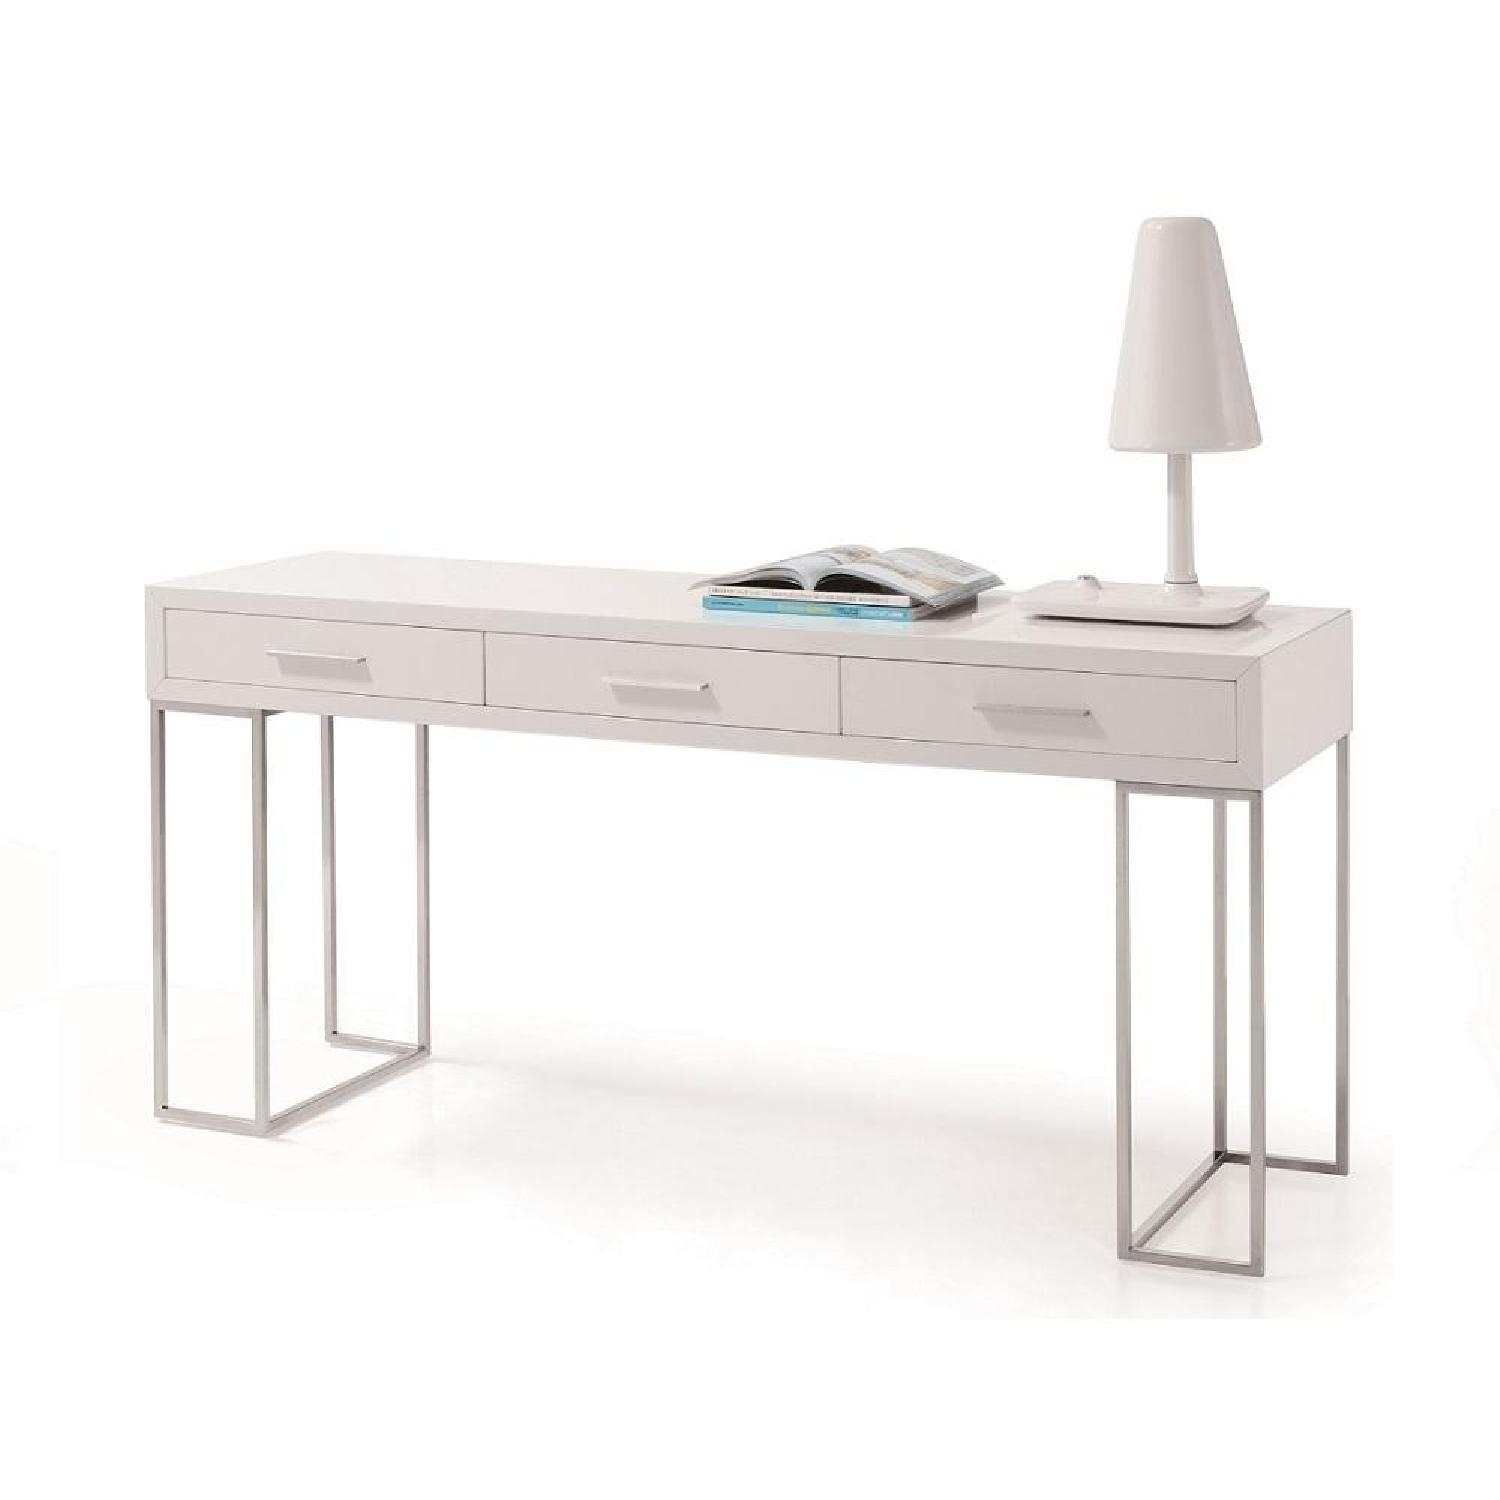 White High Gloss Finish w/ Stainless Steel Legs